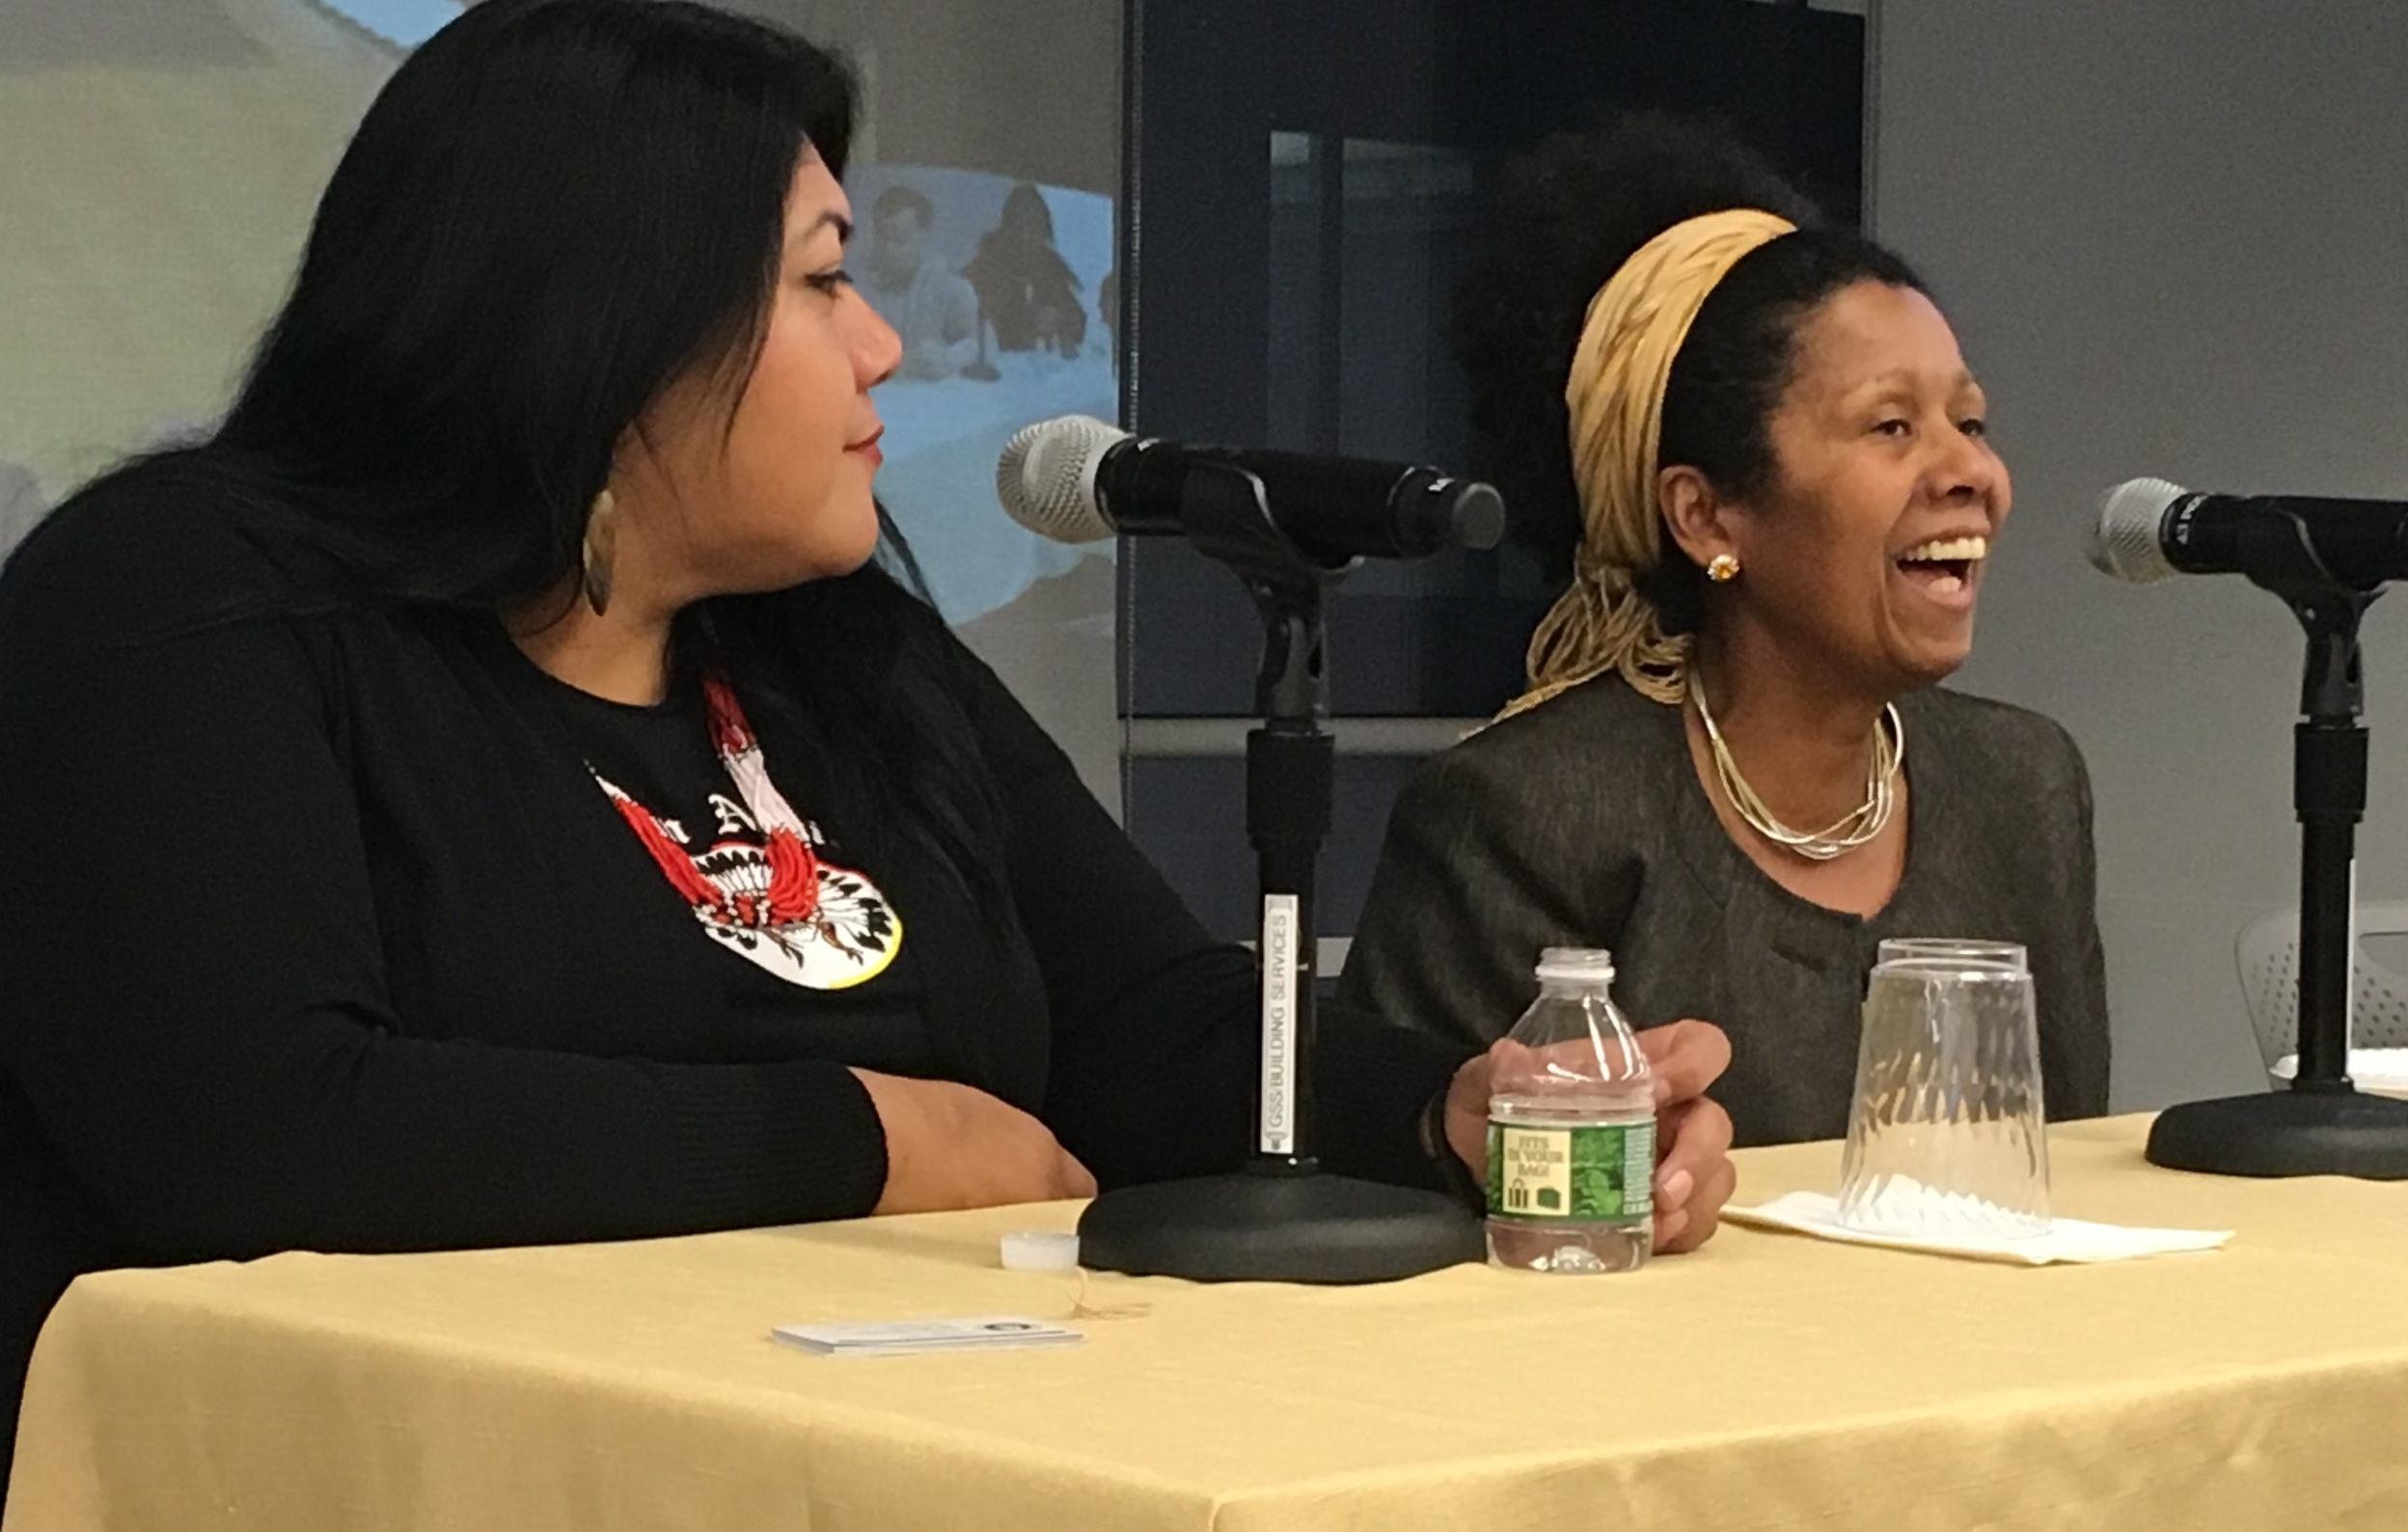 Hon. Claudette White and Hon. Maria Arias at From Courtroom to Community: Rethinking the Role of Courts and Judges panel, March 2018